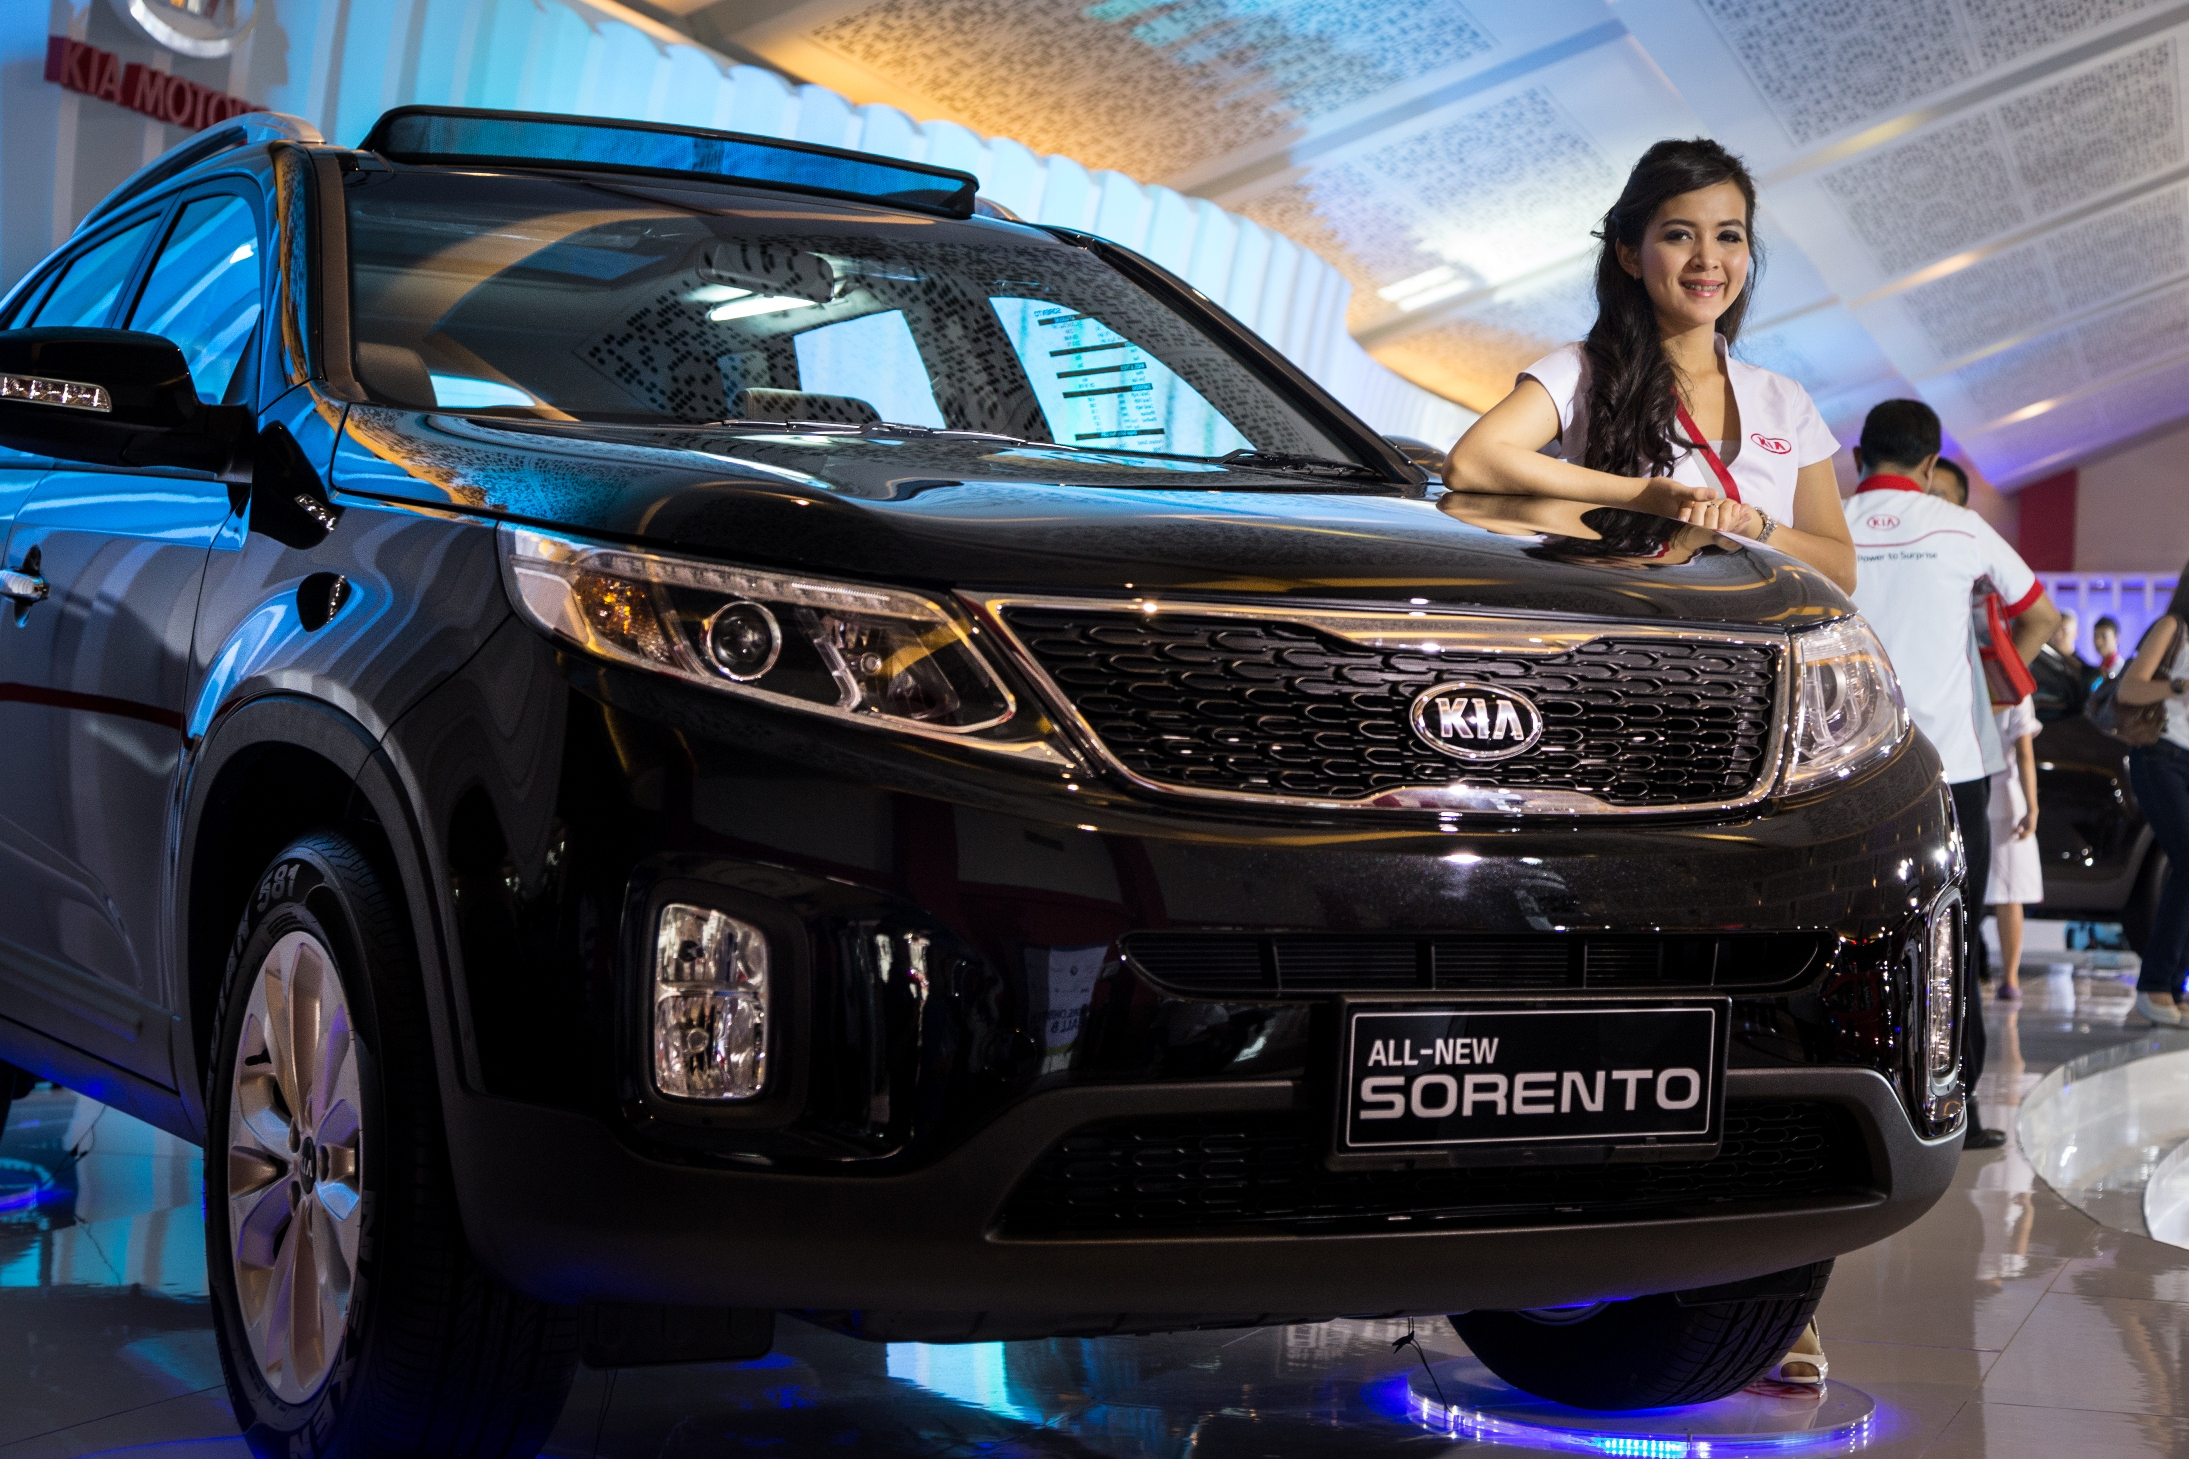 sorento girls Document read online kia sorento turbo service manual kia sorento turbo service manual - in this site is not the same as a solution encyclopedia you buy in a.